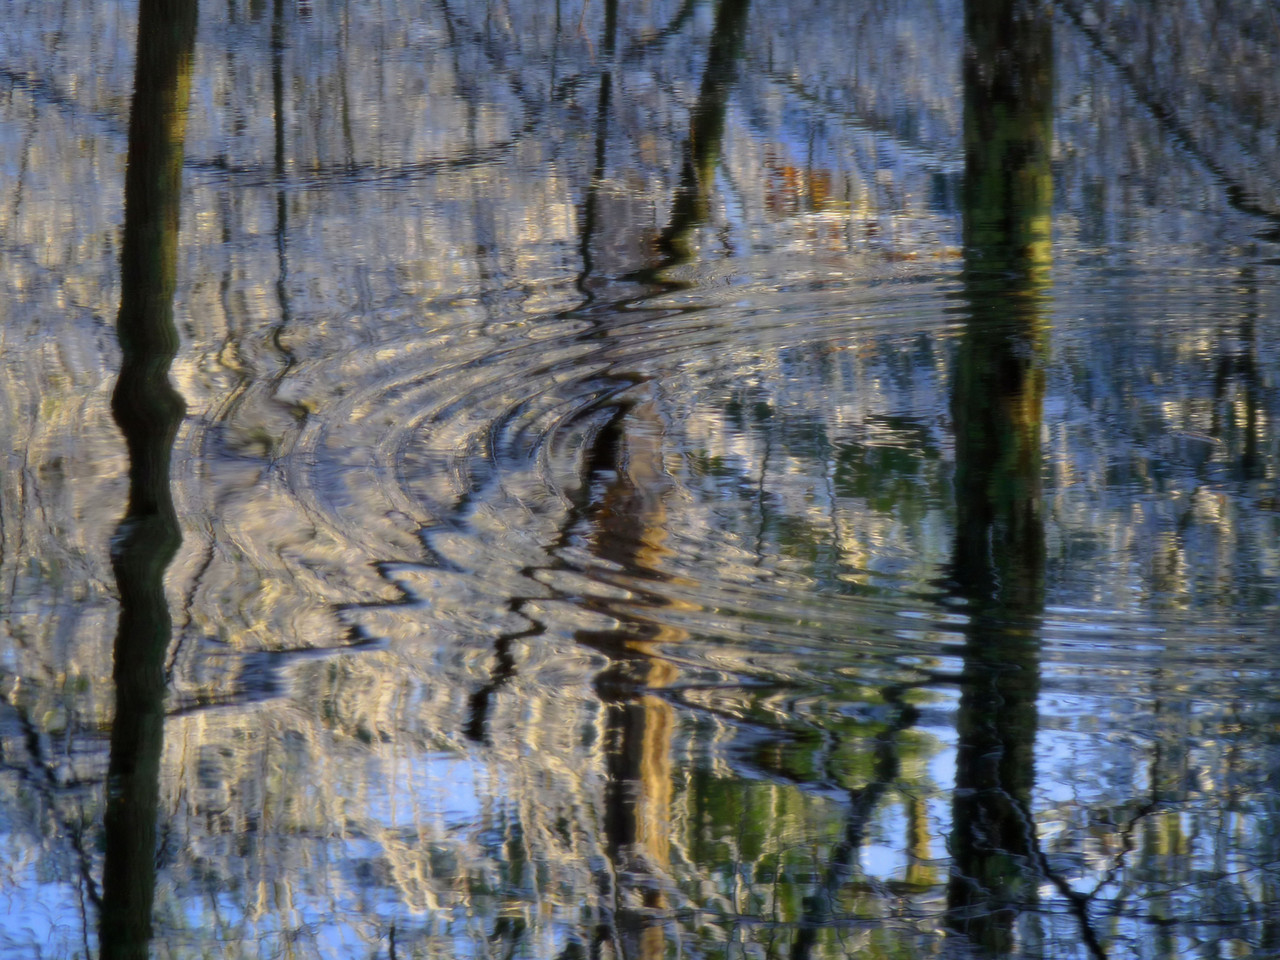 The quest for color continues....<br /> I found this colorful little reflective swamp with snow still on the trees. This is a shot of just the water, with my favorite thing to photograph~ripples!<br /> I want to thank all of you who have been so generous with your time and comments lately. I guess I'm doing something right as so many of you seem to really dig what I put up here.  Have a great day!!